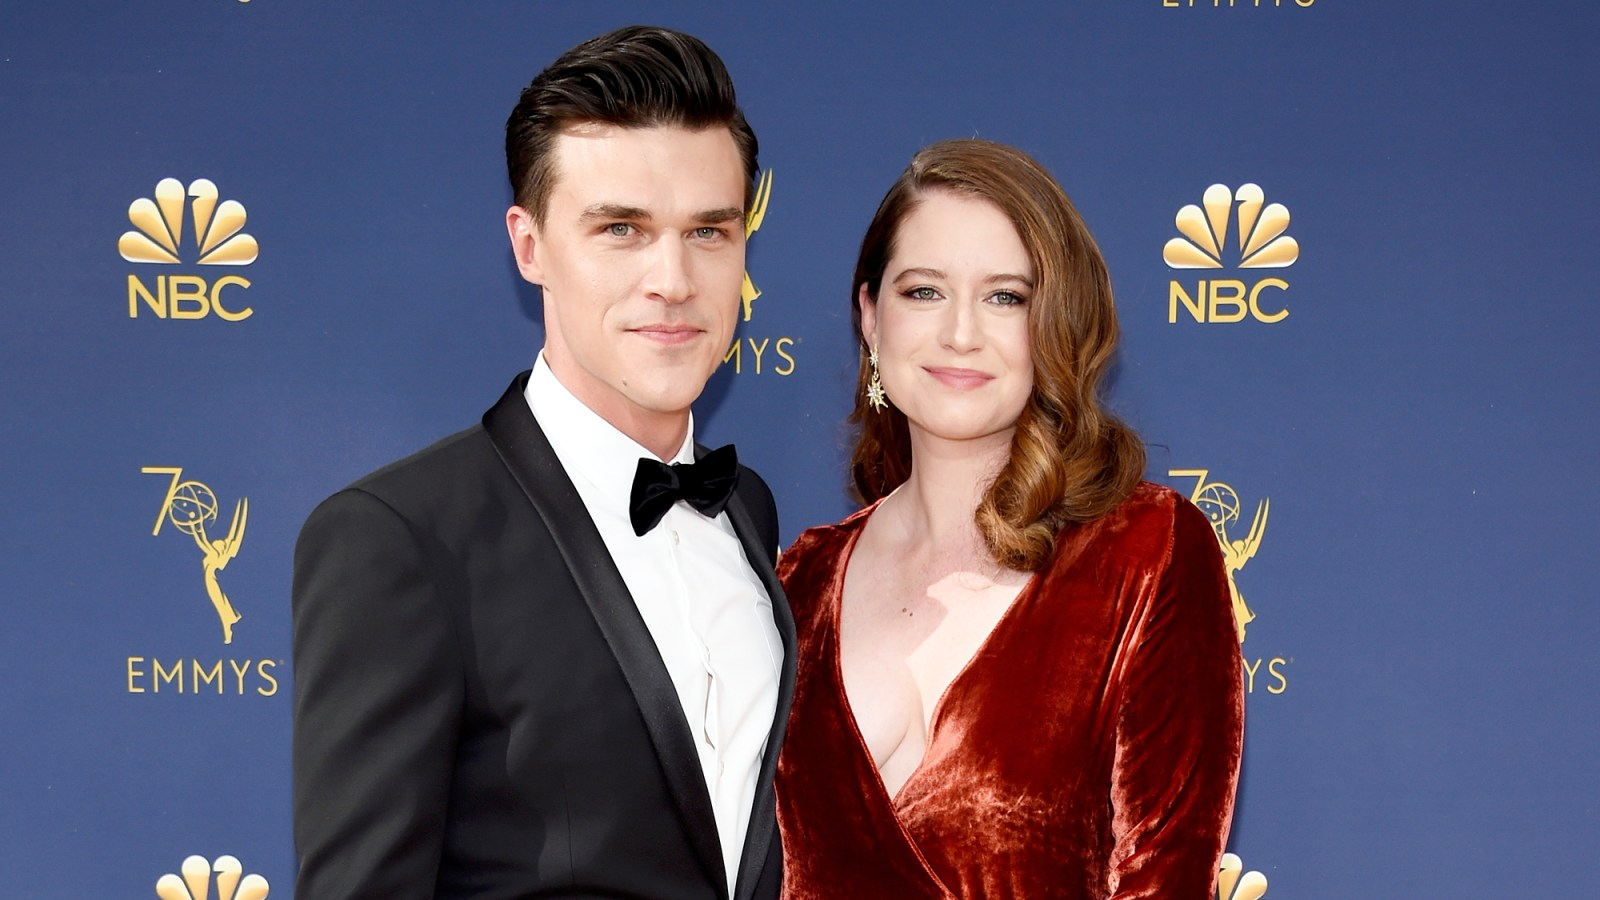 999fd6f244a28 'American Horror Story' Star Finn Wittrock's Wife Sarah Roberts Is Pregnant  With Their First Child: Photo